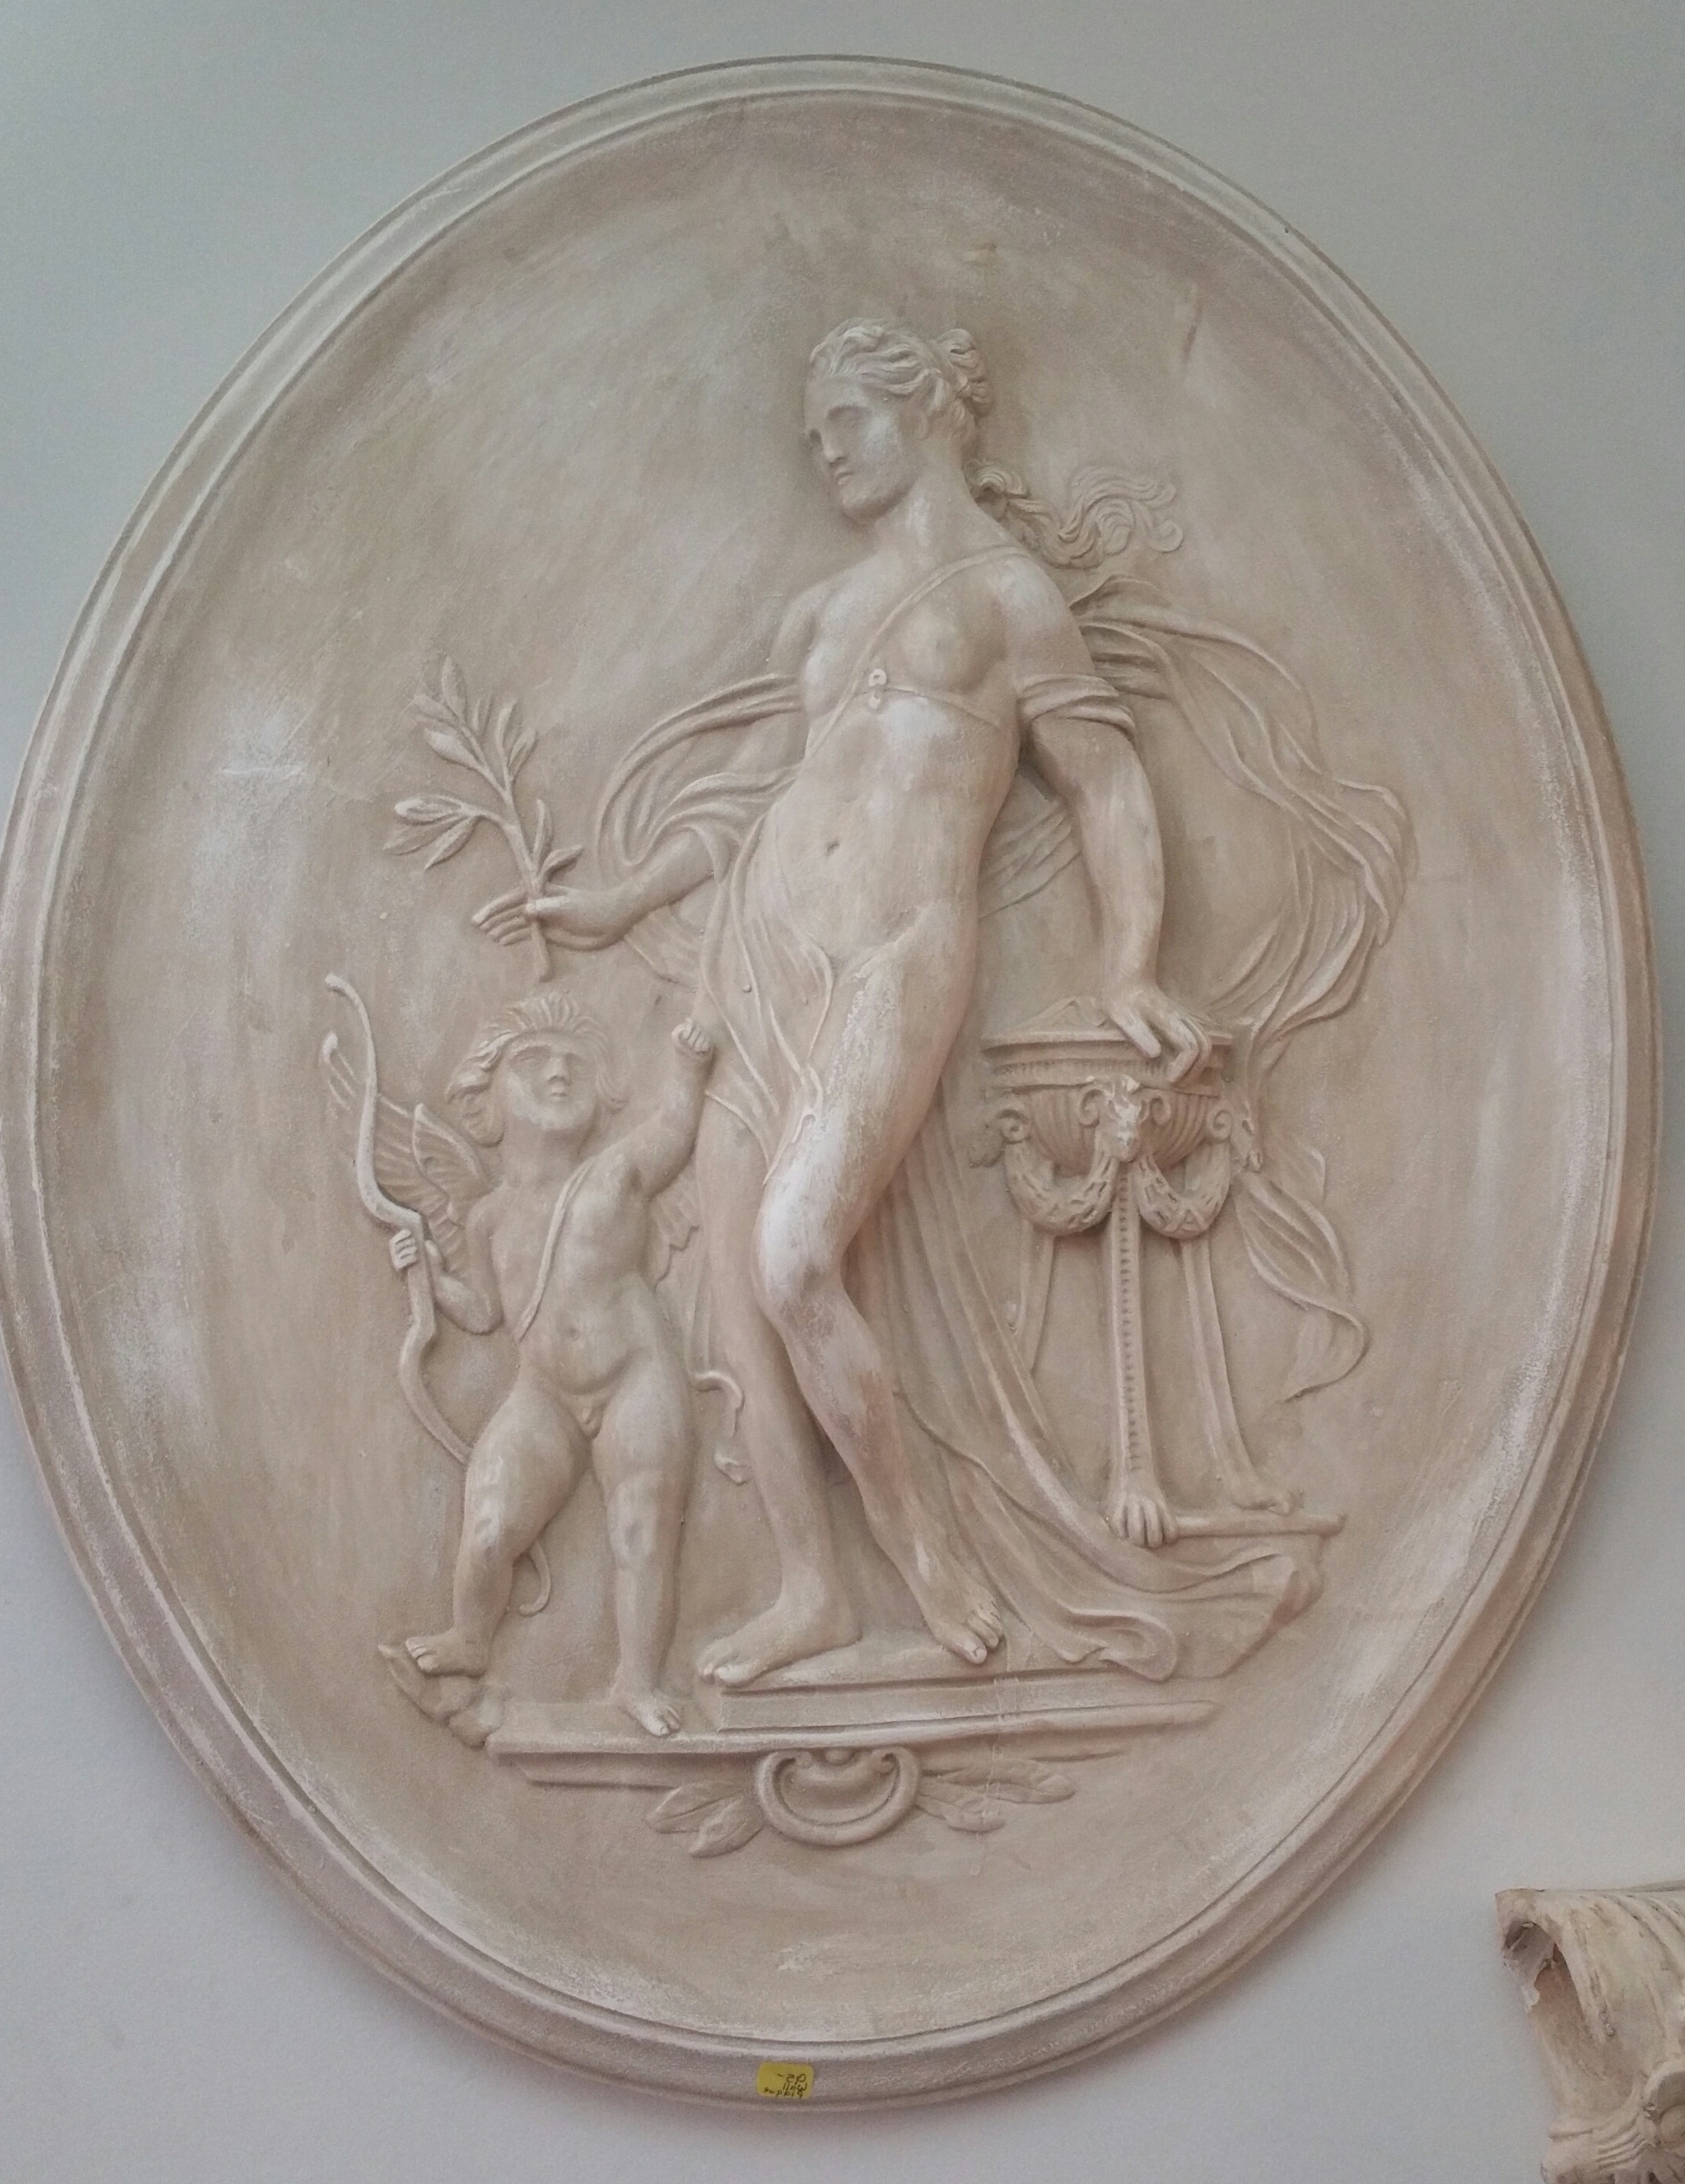 Well Known Oval Ceramic Greek Goddess With Cherub Wall Art – Le Unique Boutique Intended For Greek Wall Art (View 12 of 15)